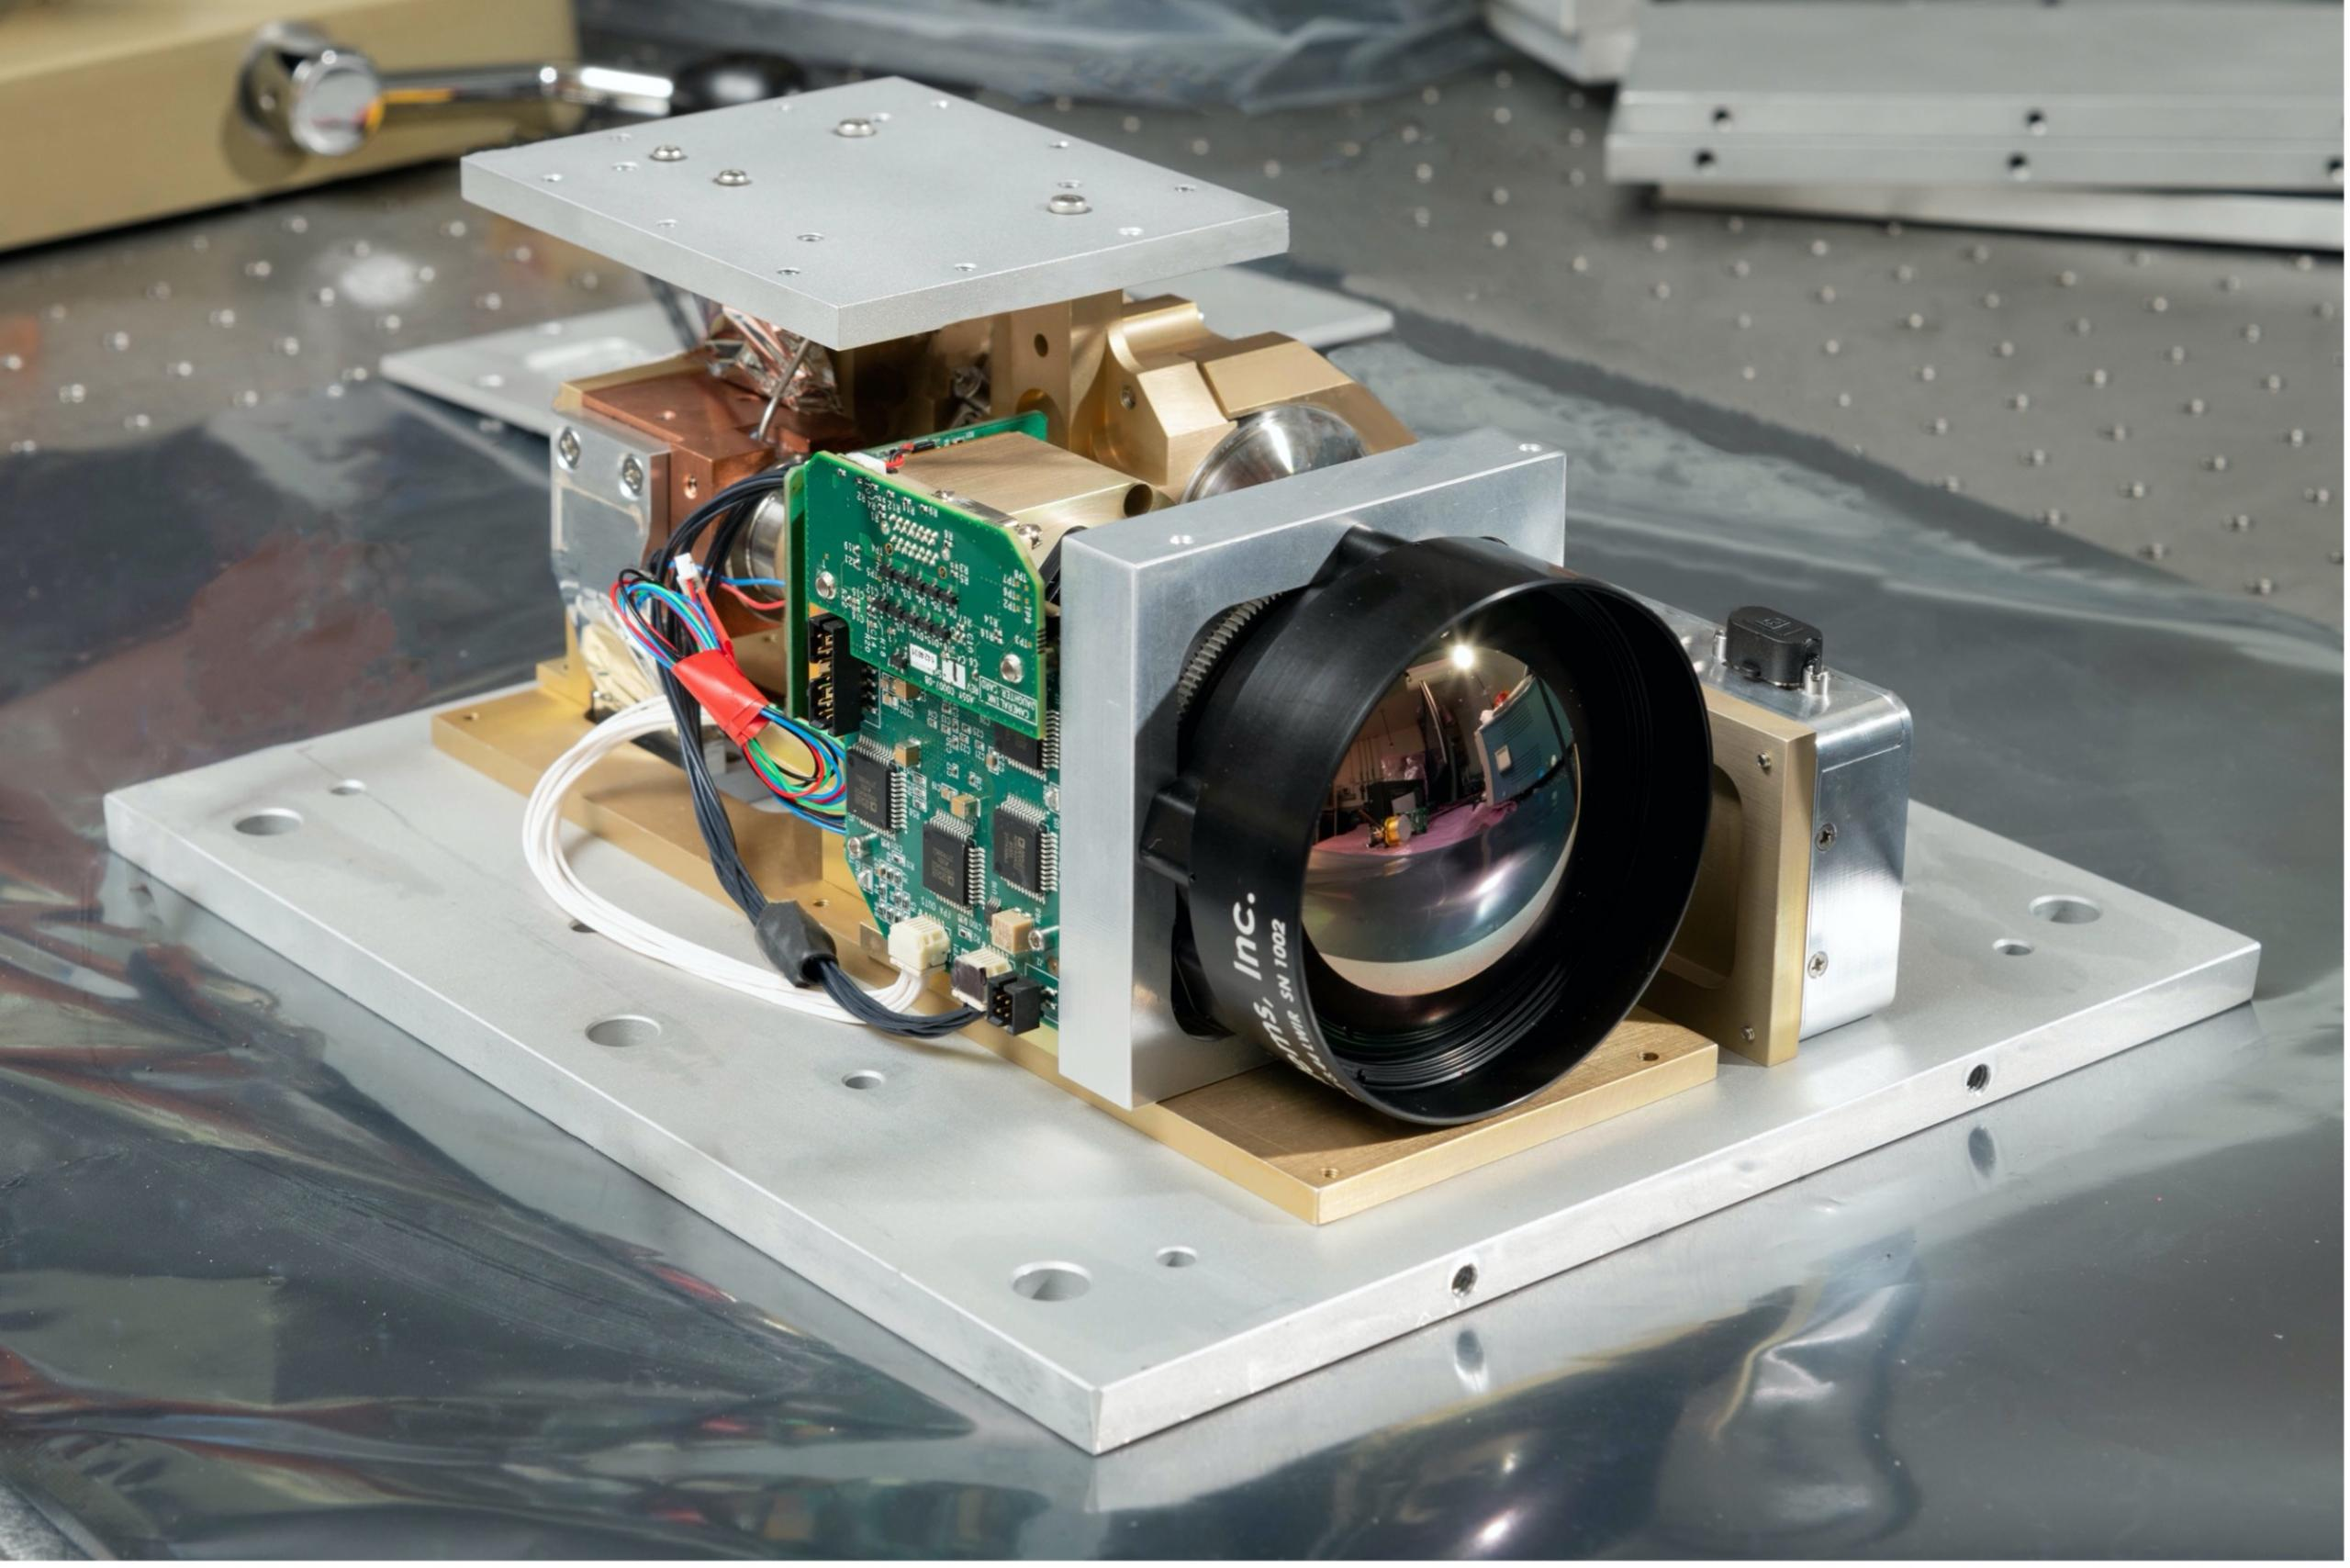 Photo of camera instrument with lens on a table.